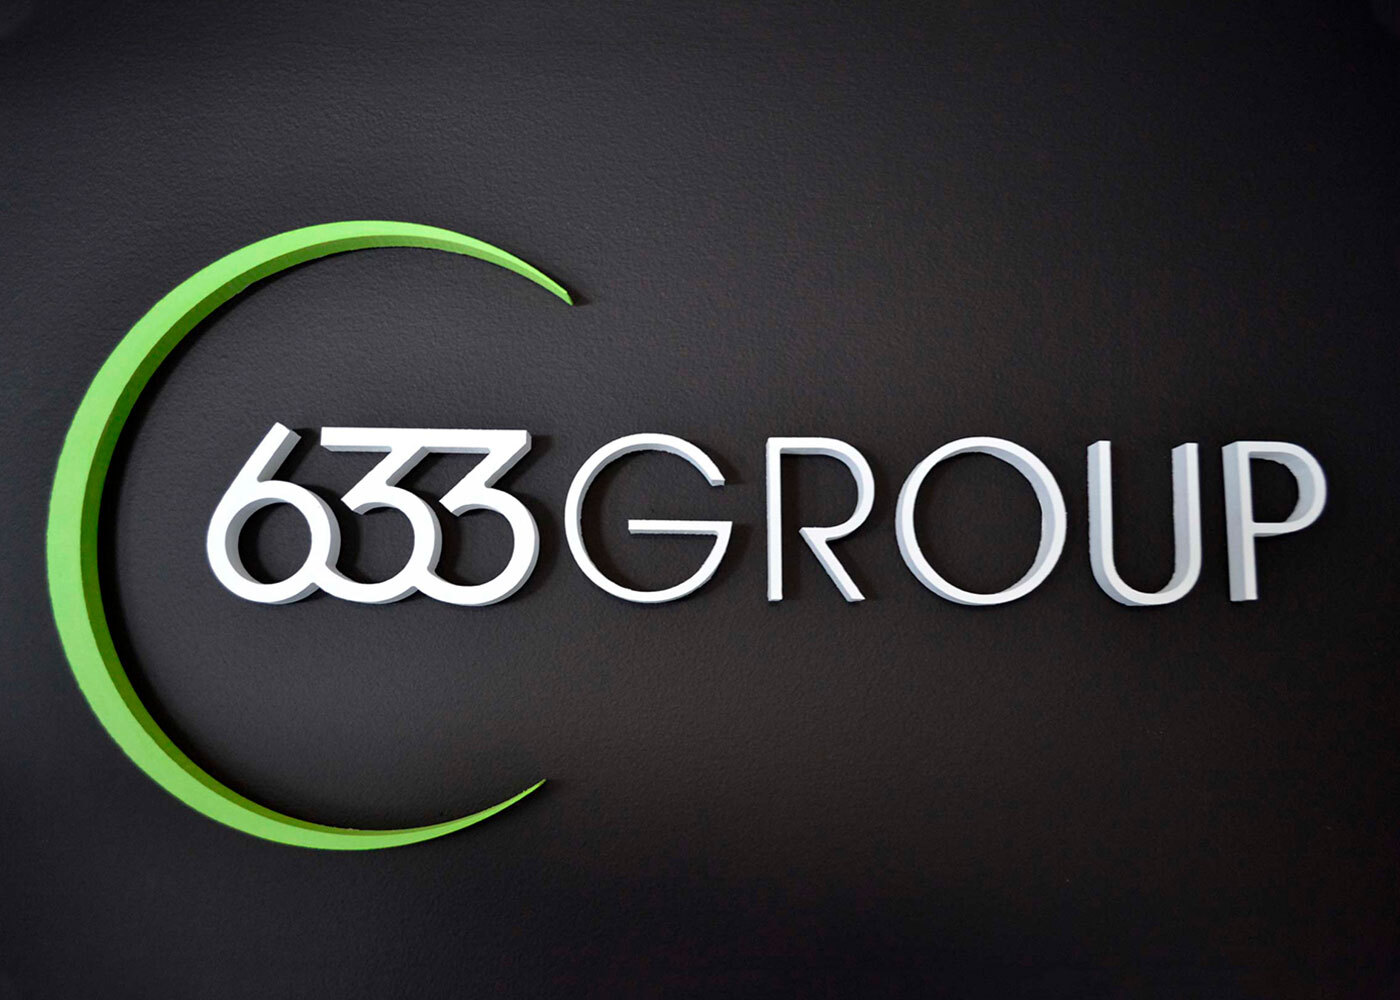 633 Group entryway logo - Experience